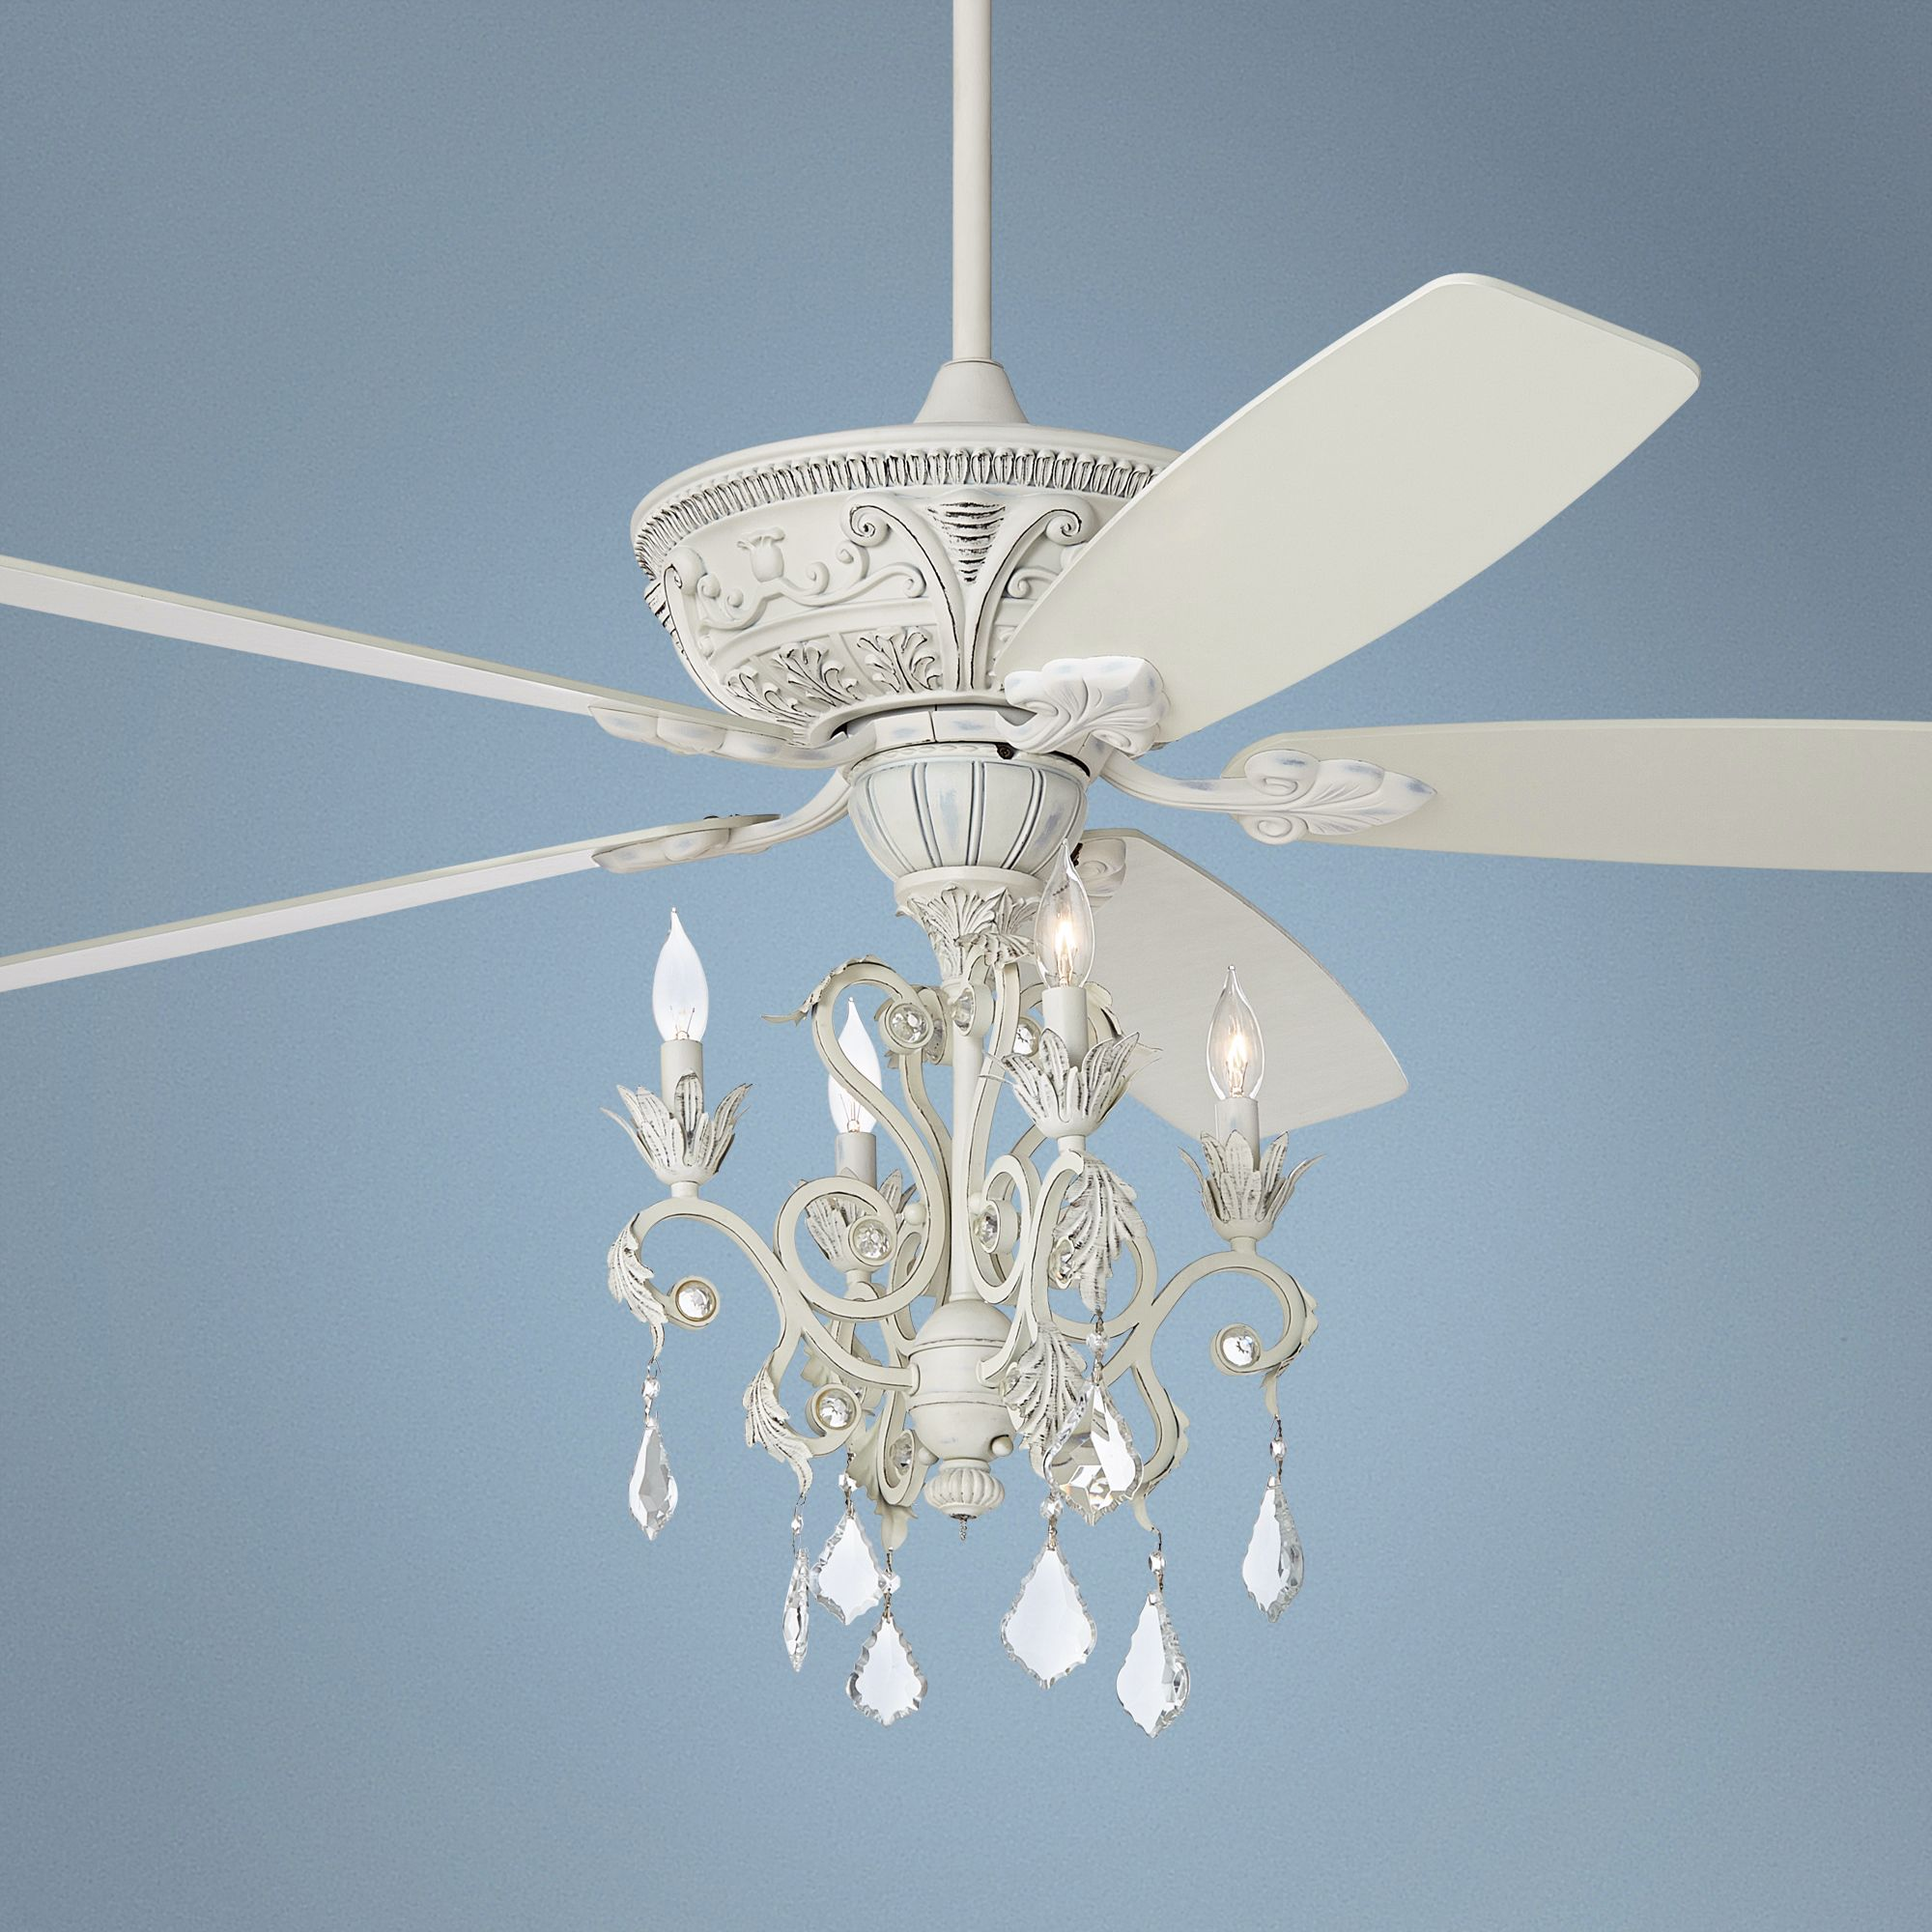 Crystal Ceiling Fan: 10 Rich Ways To Cool Your Room